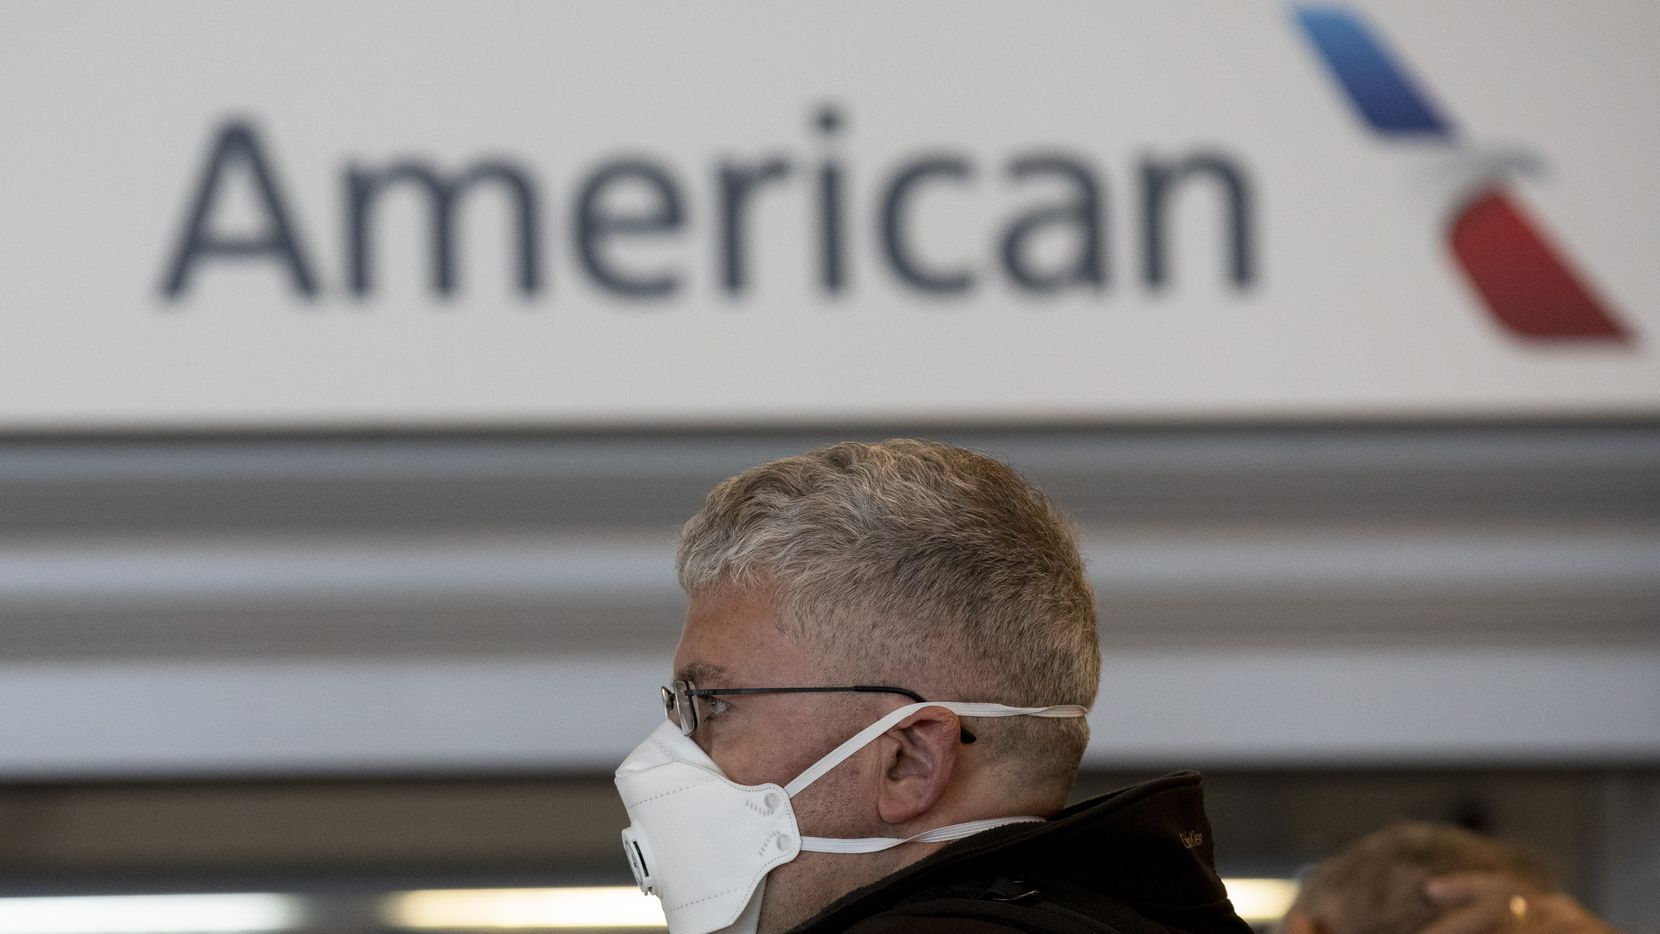 MADRID, SPAIN - MARCH 13: A passenger wearing protective mask queue at customer assistance of American Airlines before the Trump European travel ban goes into effect tonight at Madrid-Barajas Adolfo Suarez Airport on March 13, 2020 in Madrid, Spain. The Trump administration is banning temporarily for 30 days all non-U.S. citizens from flying from continental Europe to the United States in an effort to slow the ongoing spread of the COVID-19. (Photo by Pablo Blazquez Dominguez/Getty Images)